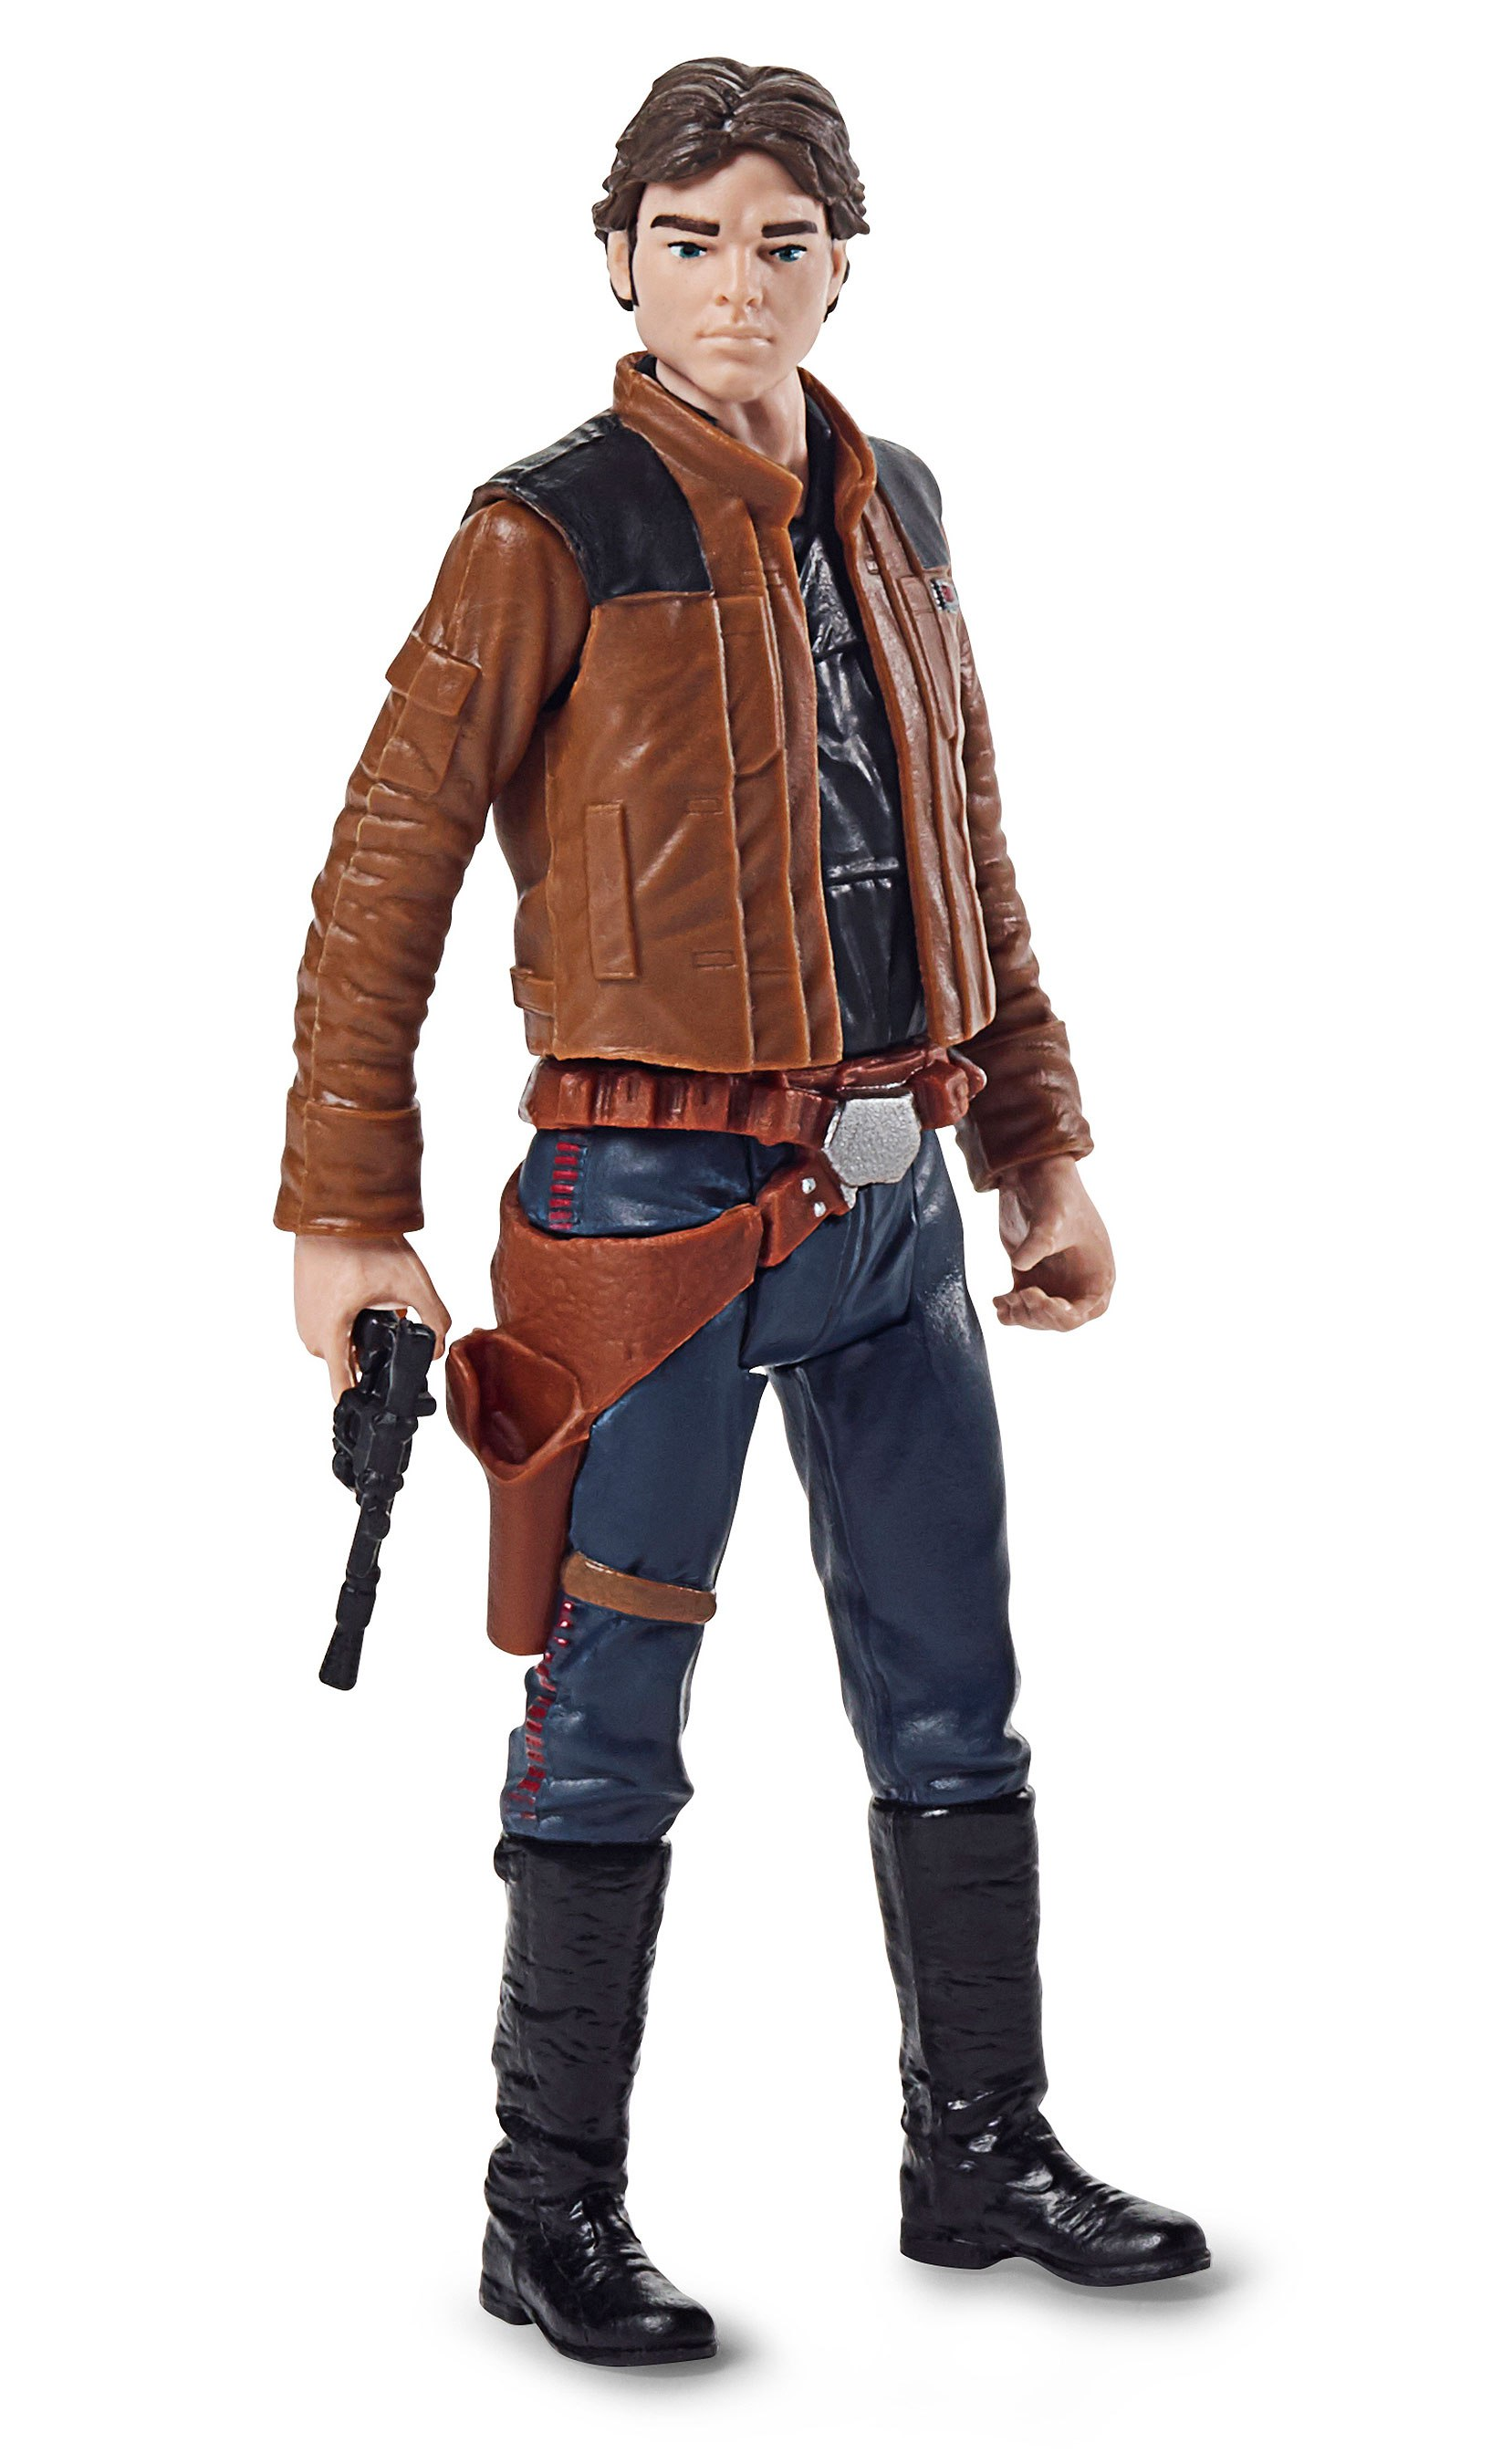 New Star Wars Toys : Hasbro s 'new solo a star wars story toys milners